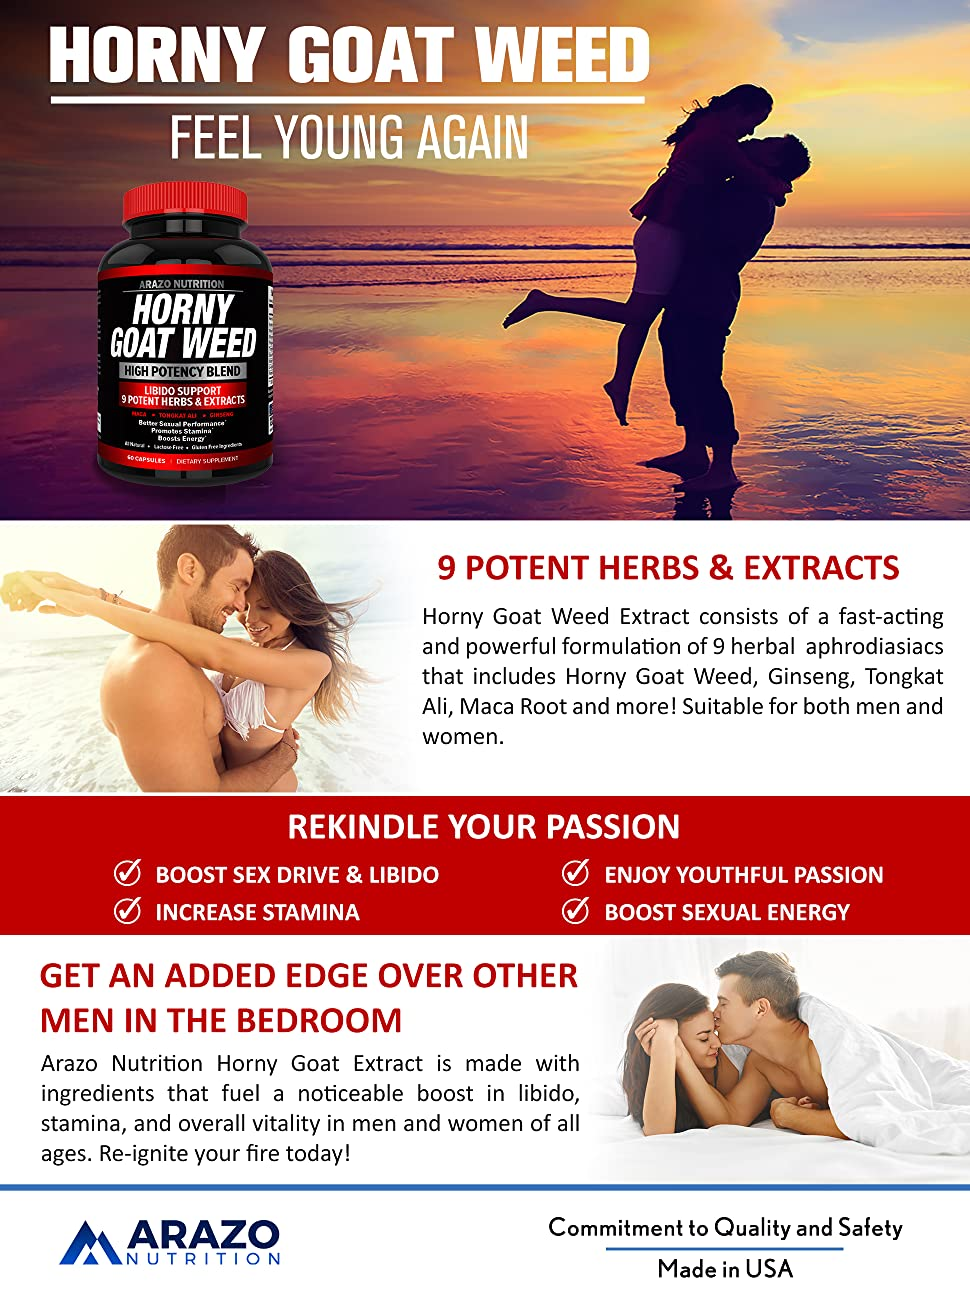 PREMIUM Horny Goat Weed Extract with Maca Root, Ginseng, Muira Puama and  L-Arginine - For Men and Women - 100% Pure Herbal Nutritional Supplement -